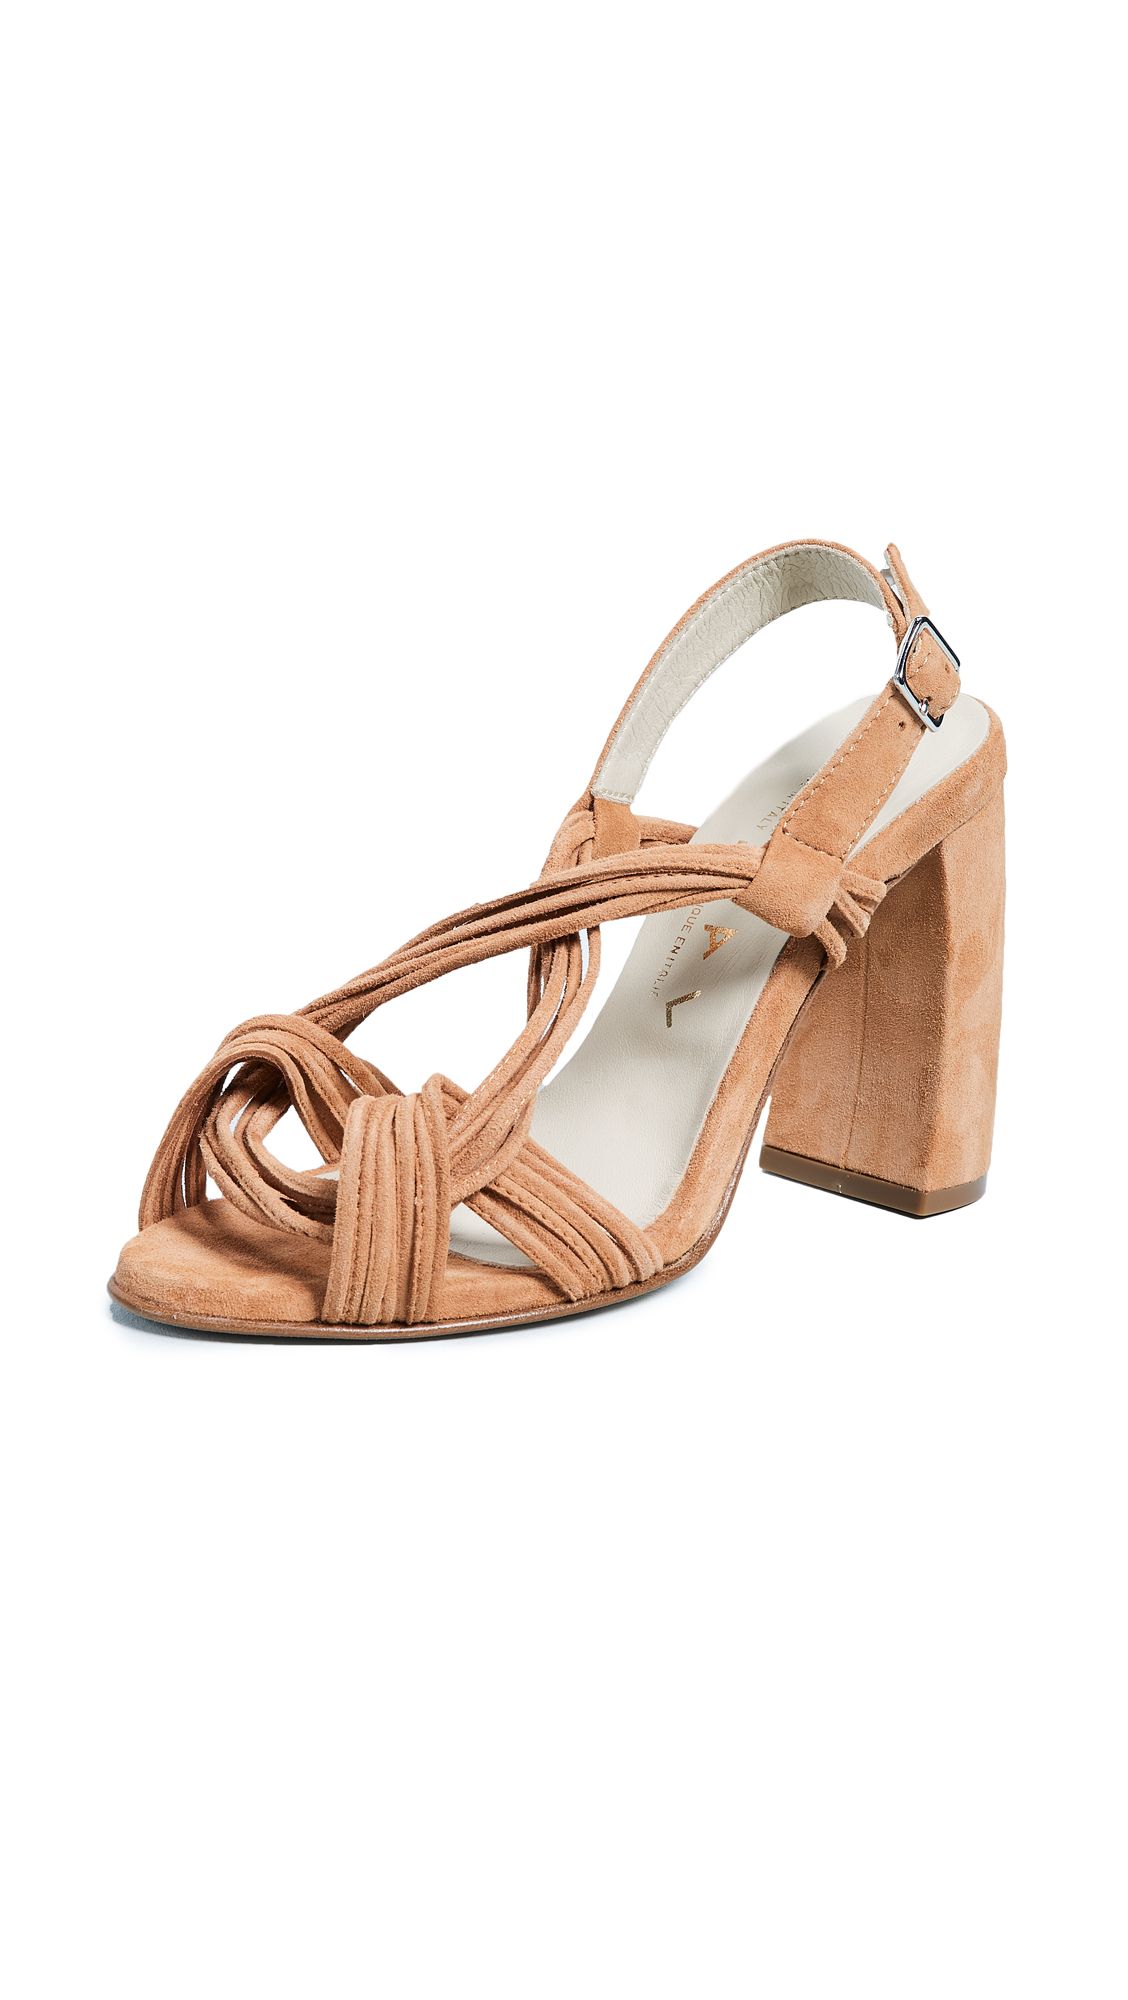 Photo of Ouigal Juniper Strappy Sandals - buy Ouigal footwear online